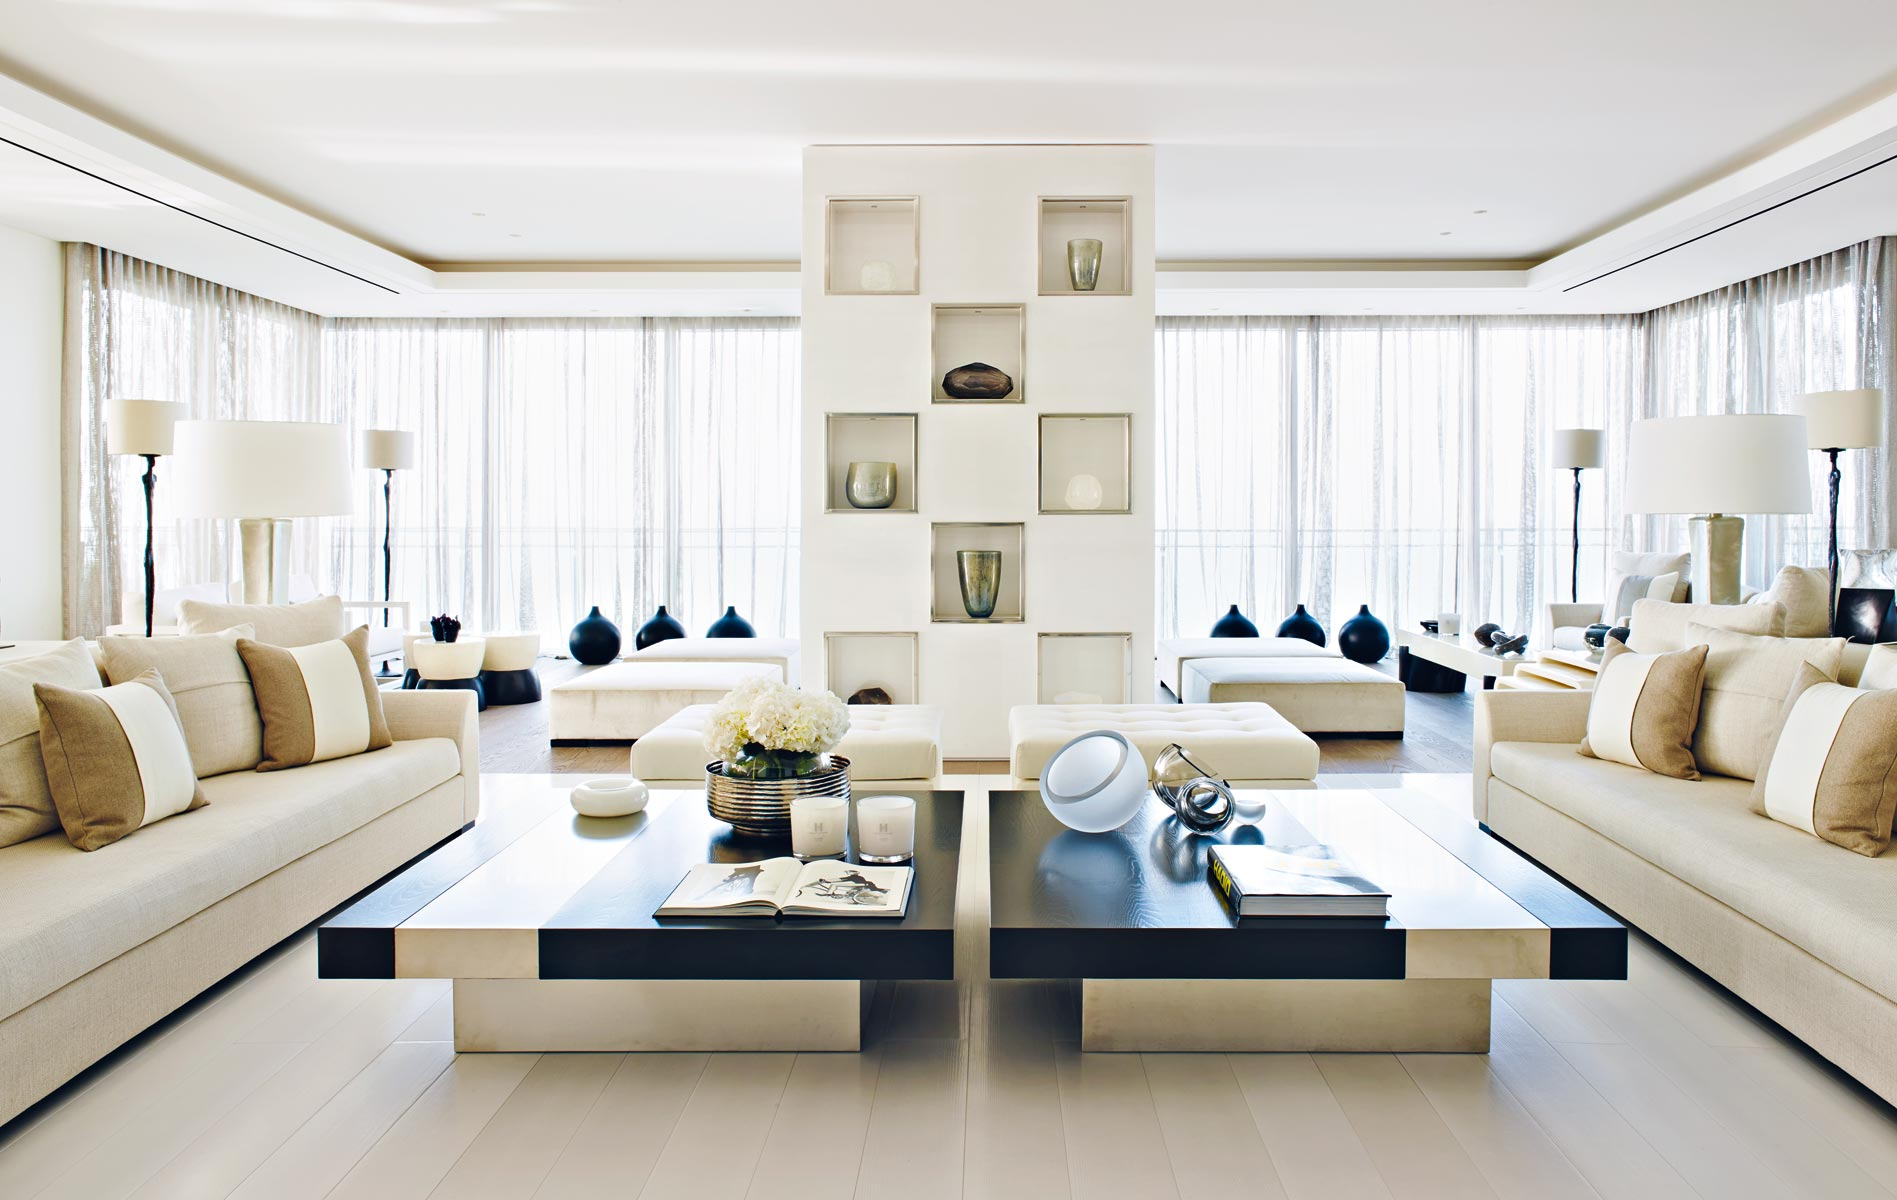 Top 10 kelly hoppen design ideas Beautiful home interior design ideas